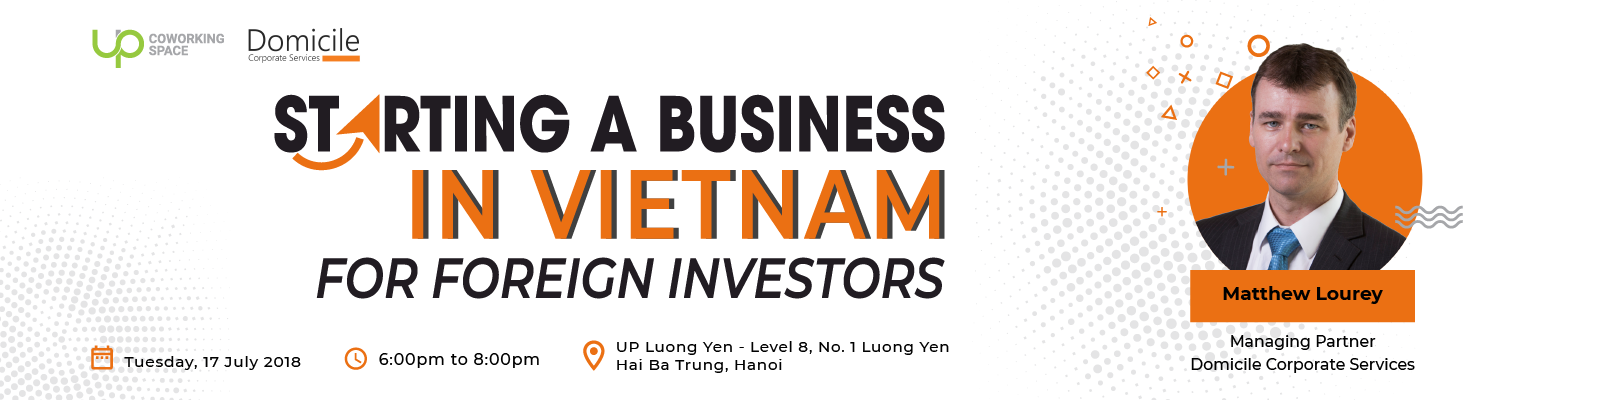 Starting a business in Vietnam for foreign investors